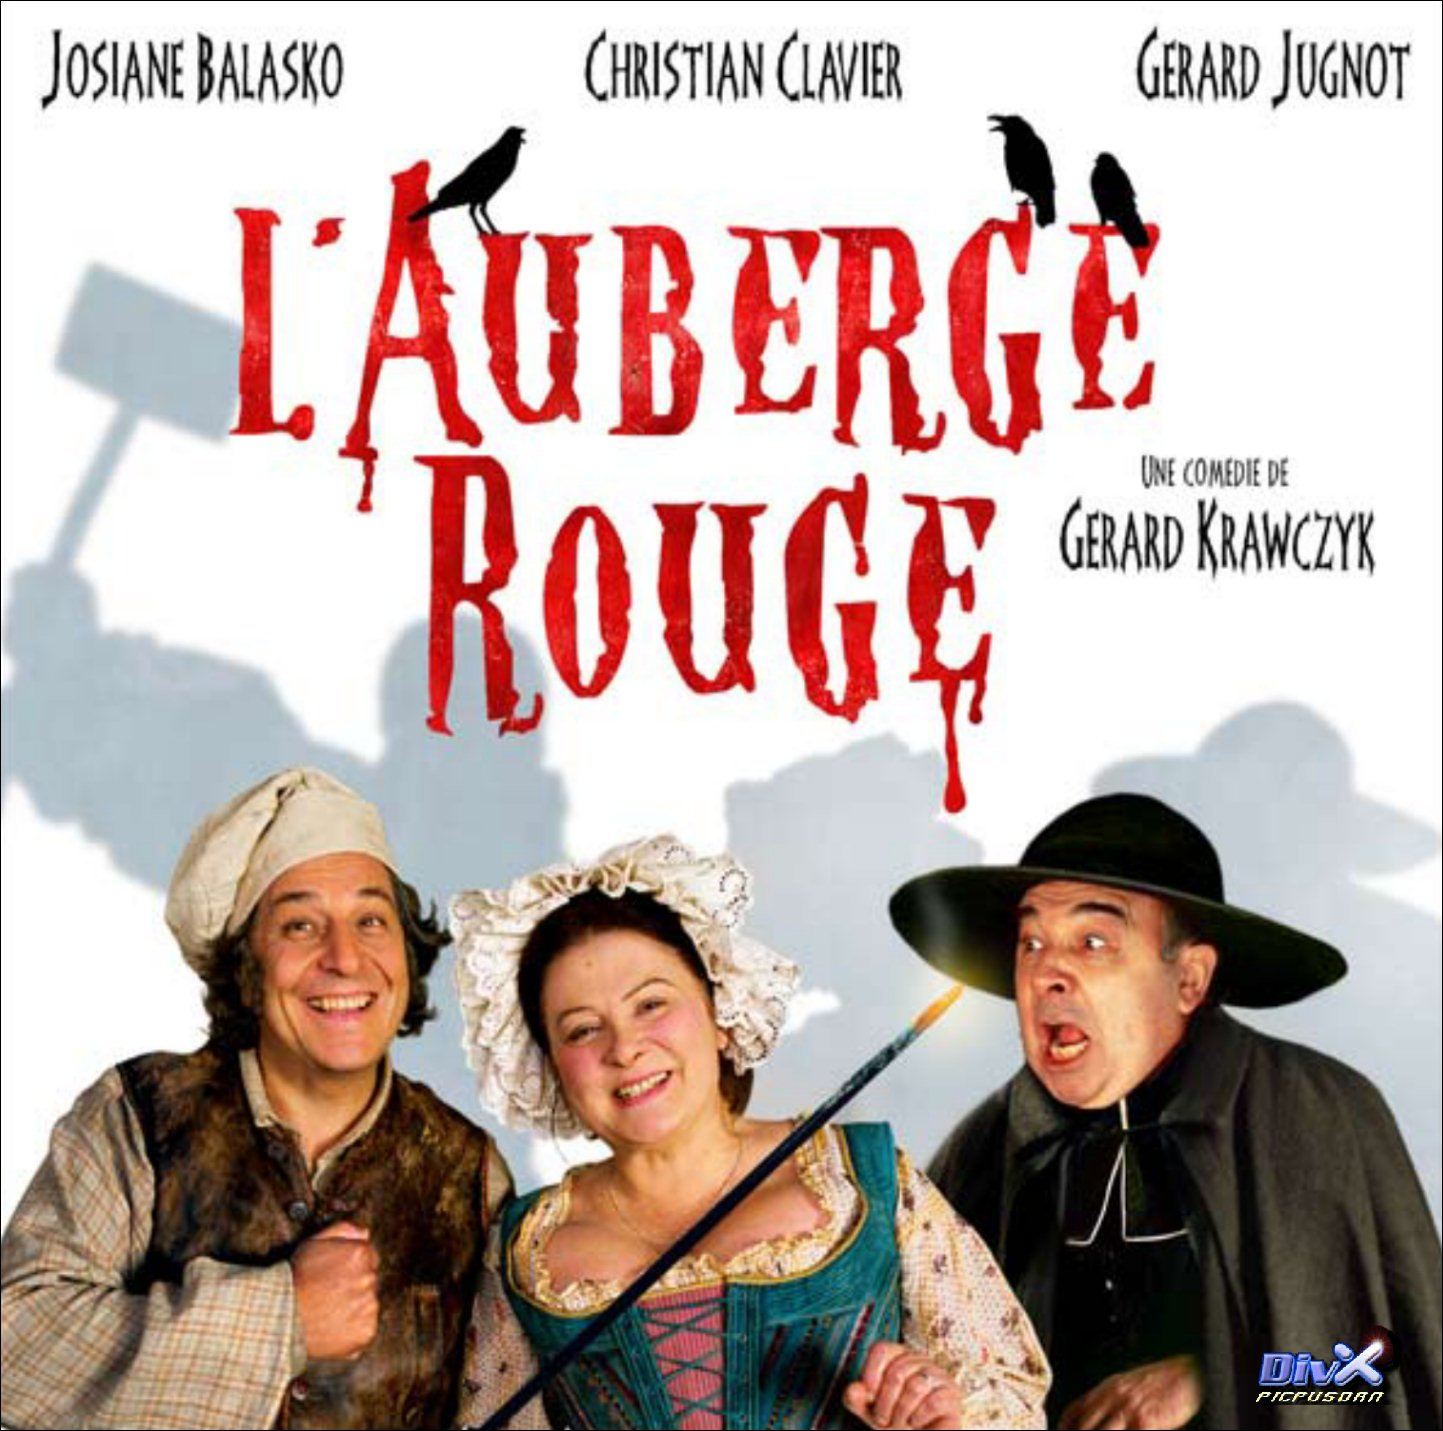 L'auberge Rouge by Warner